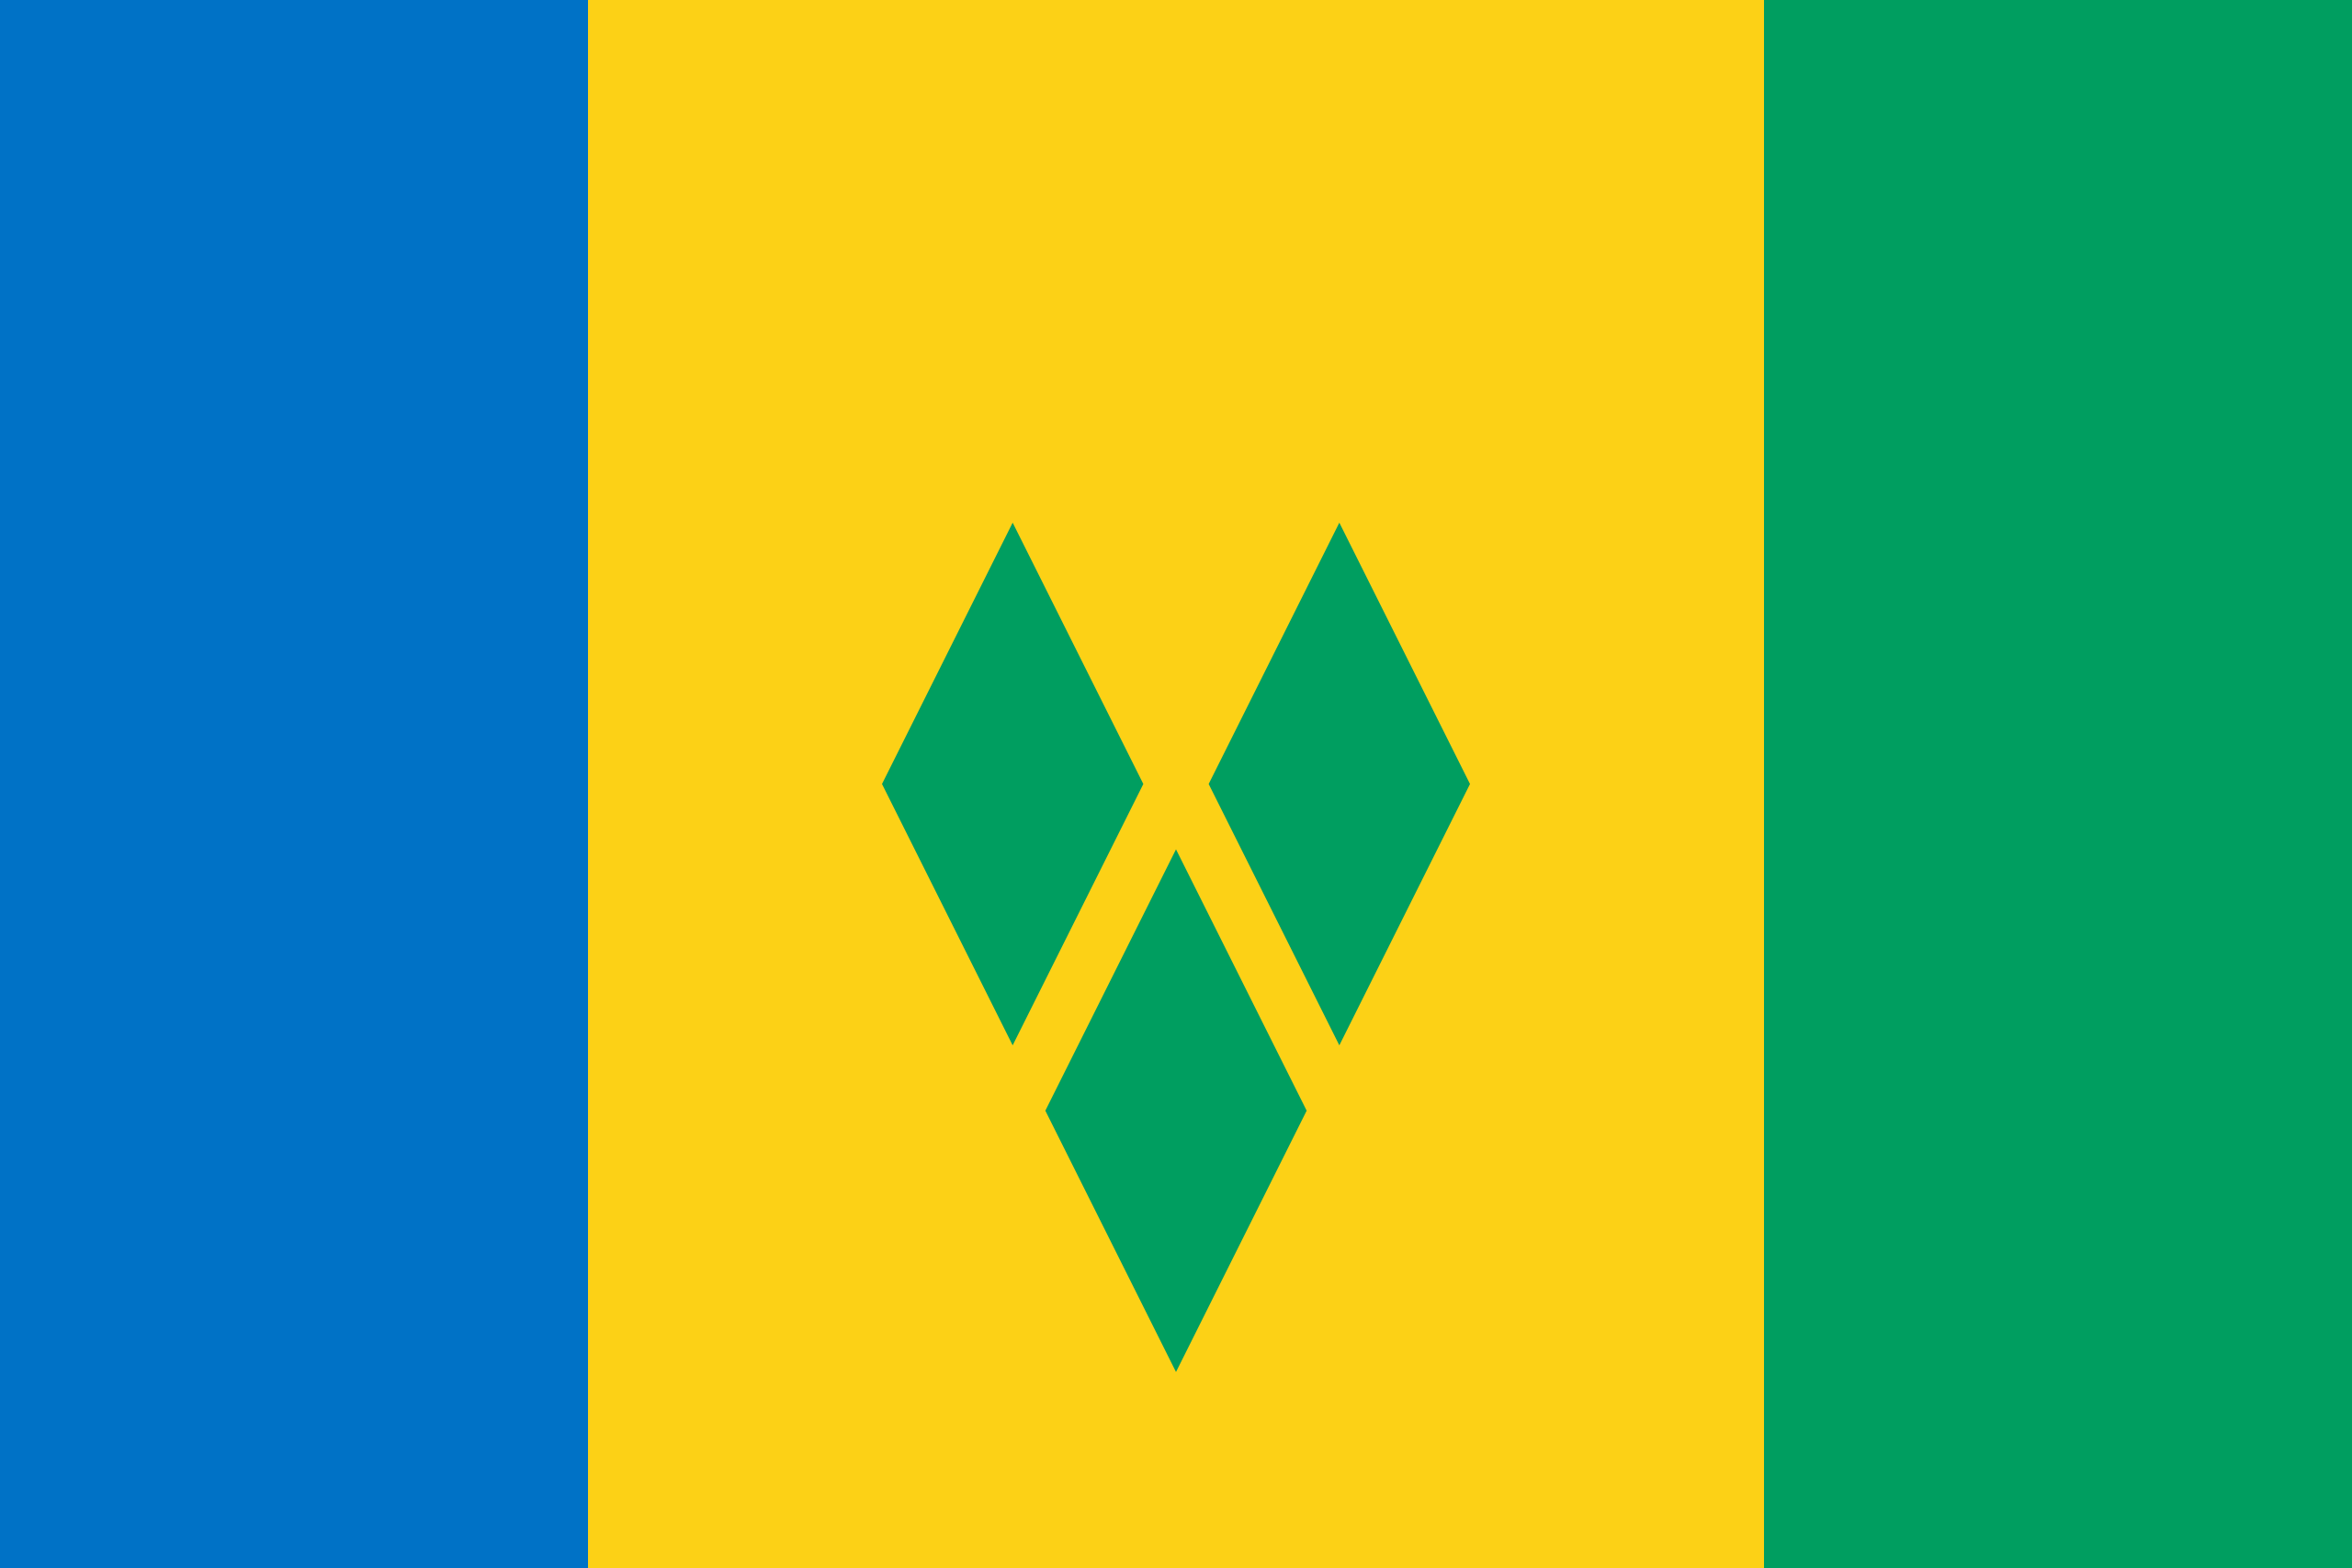 Saint Vincent and the Grenadines.